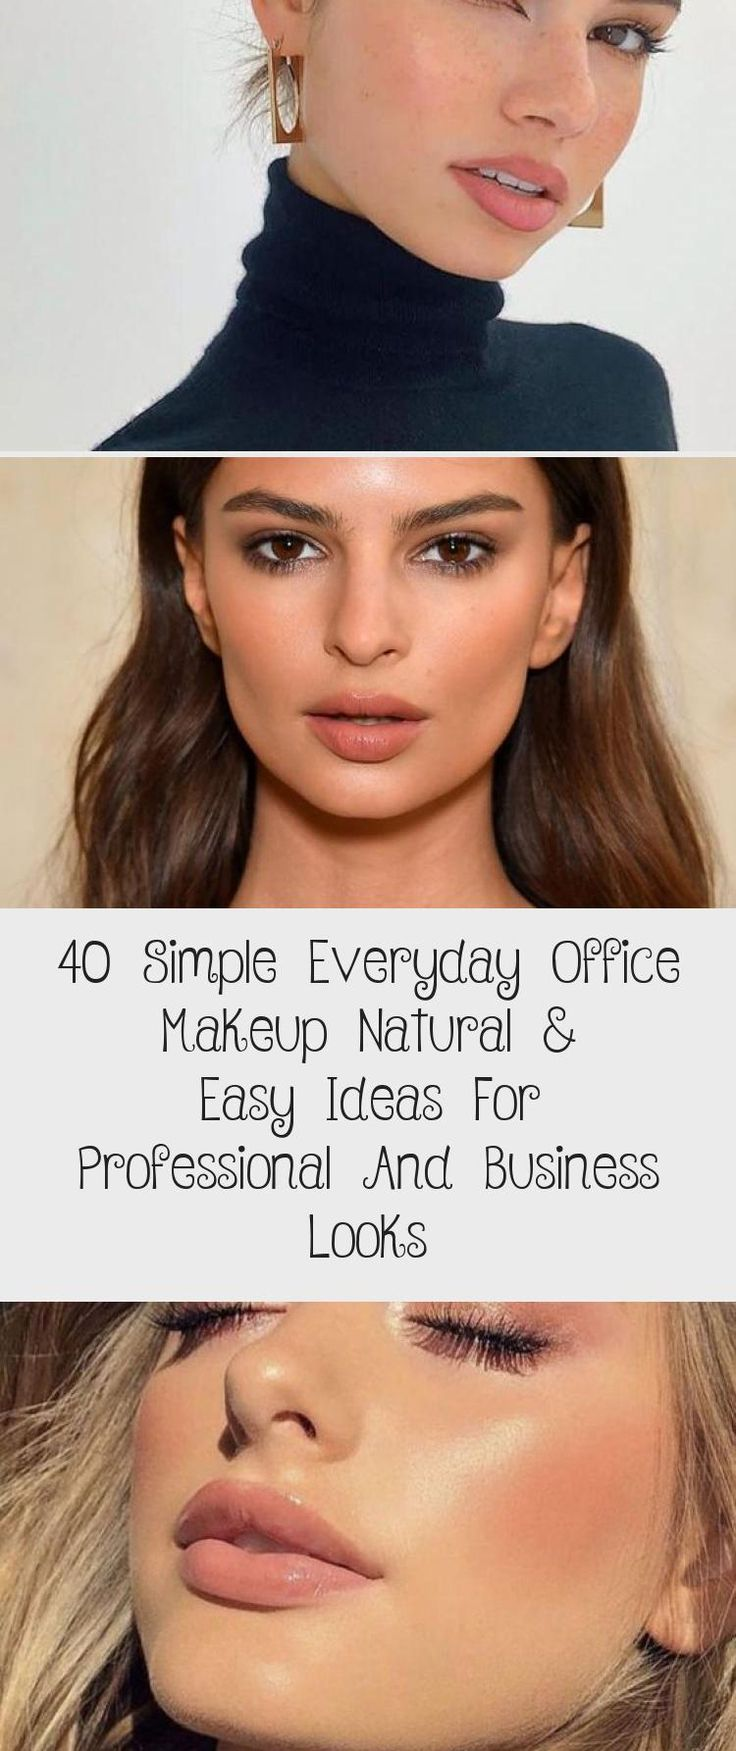 40 Simple Everyday Office Makeup Natural & Easy Ideas For